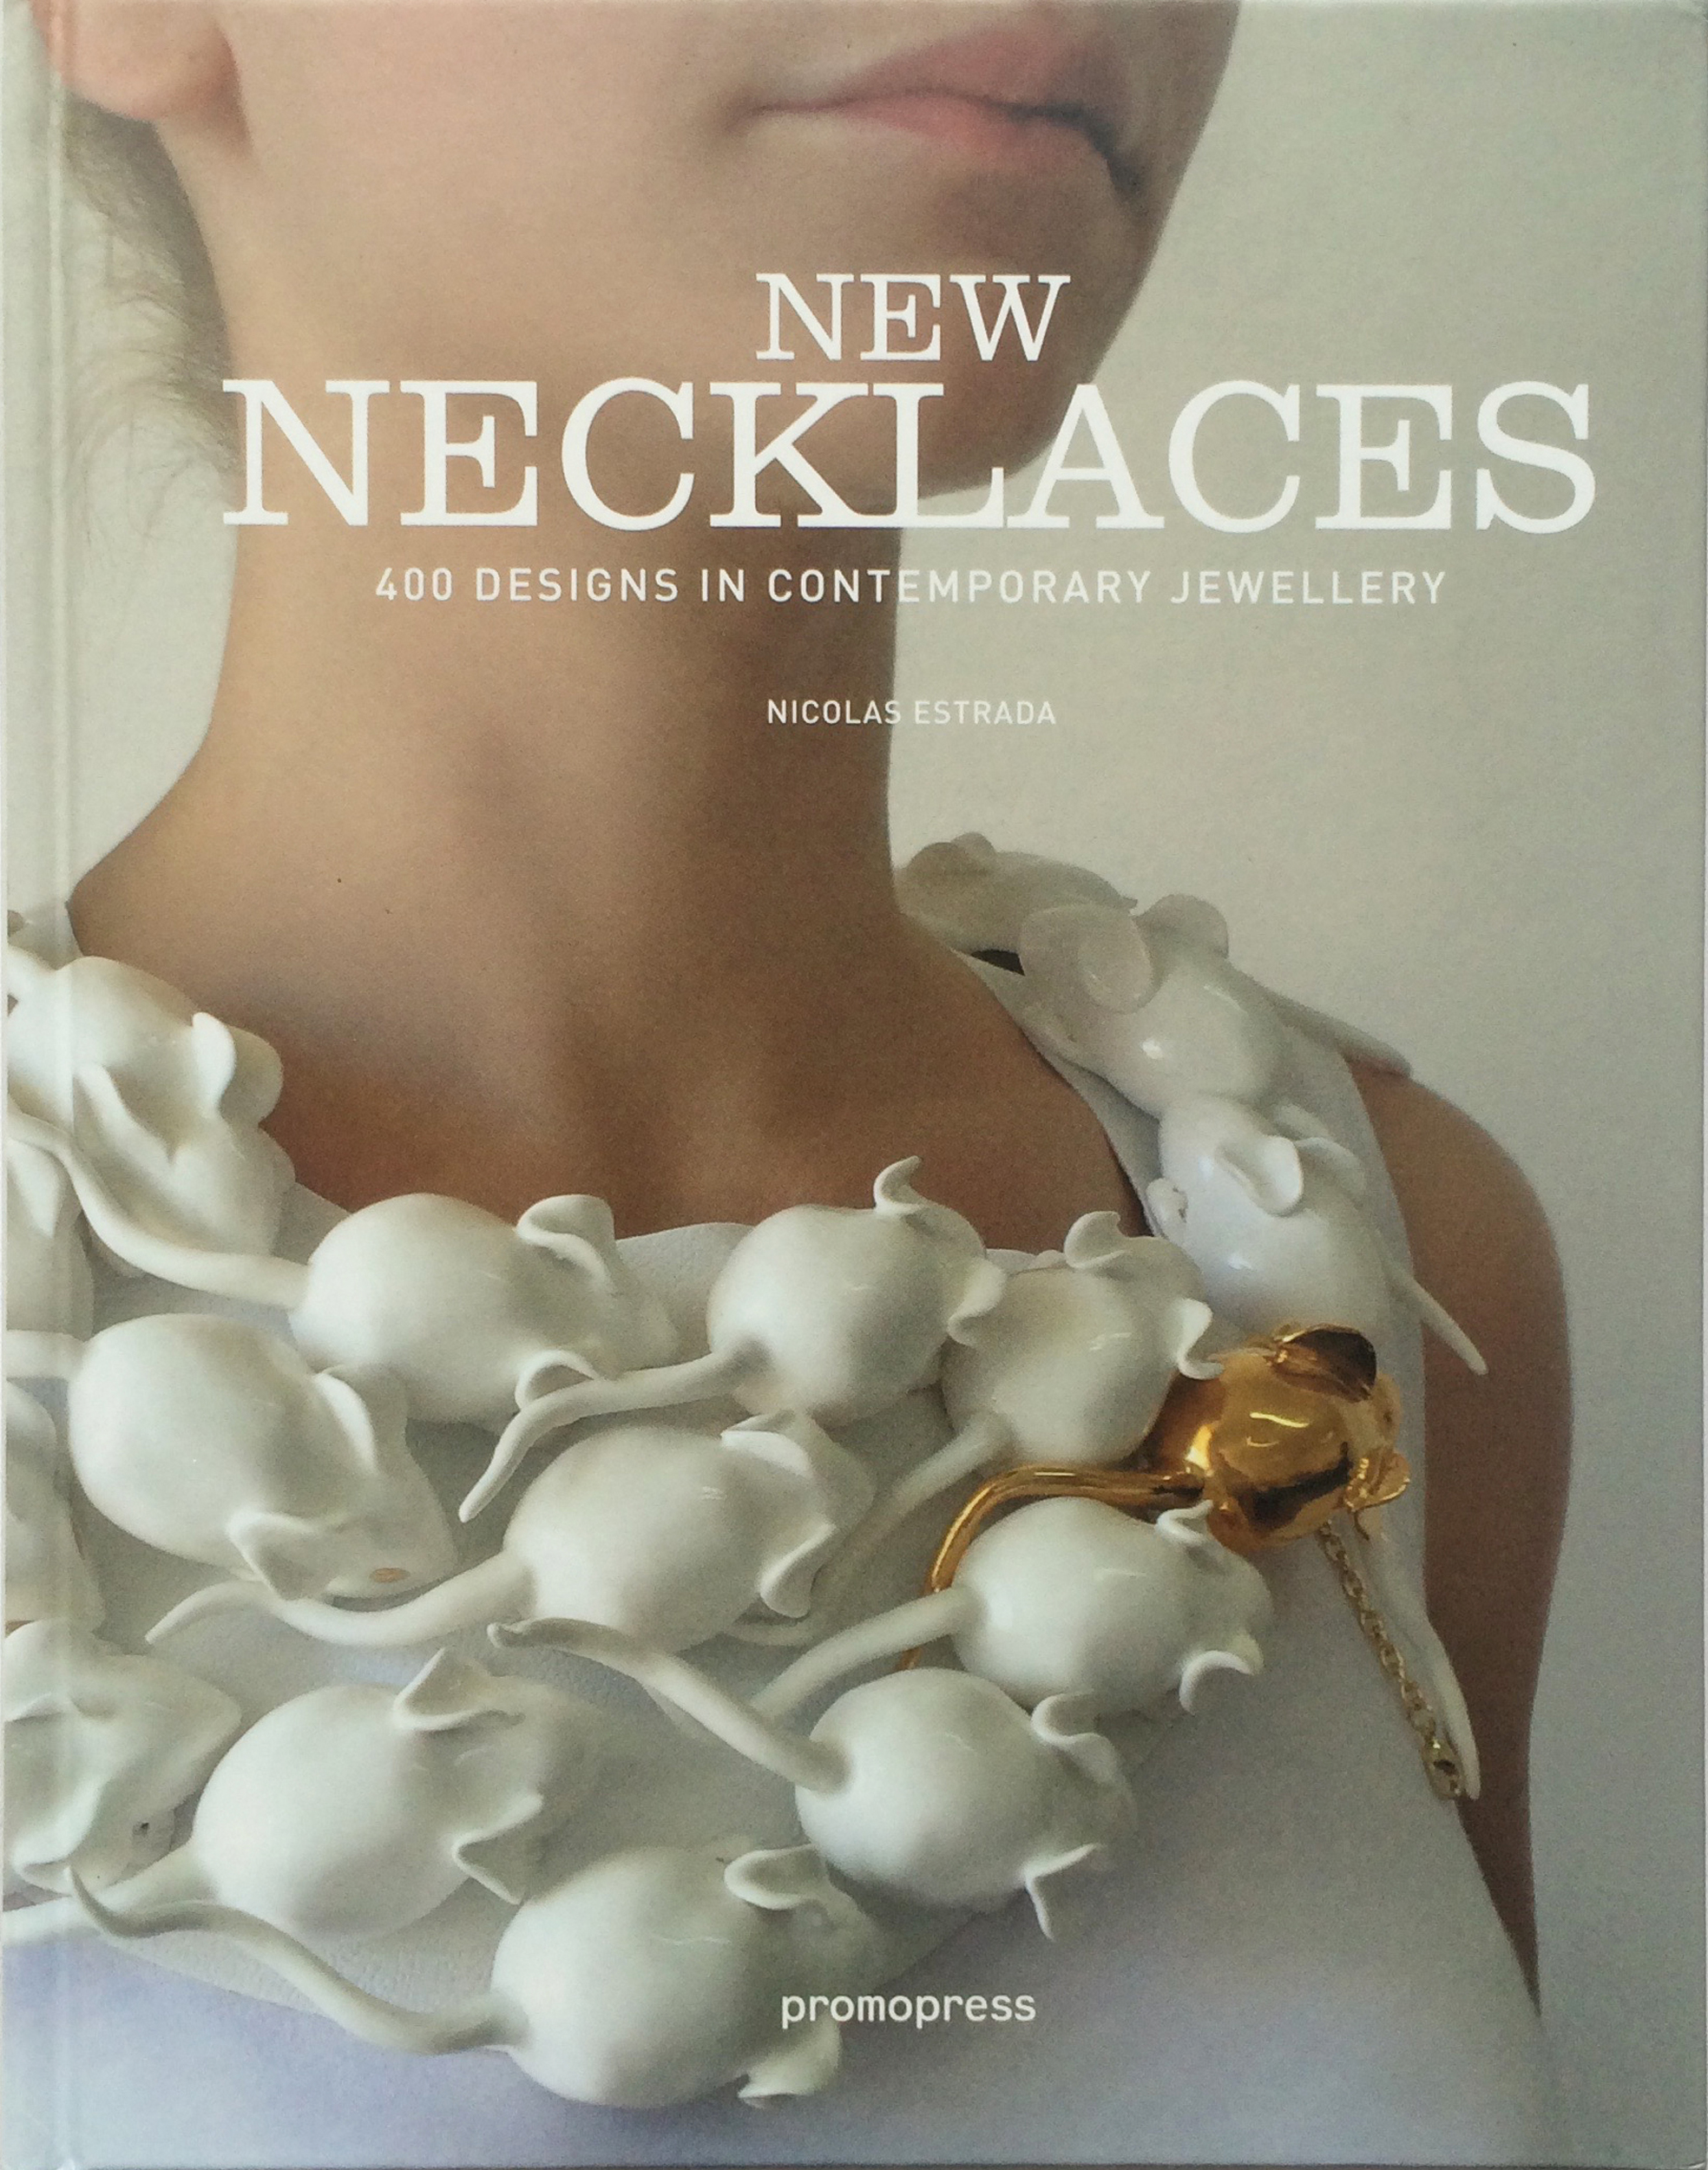 New-necklaces-front-cover.jpg